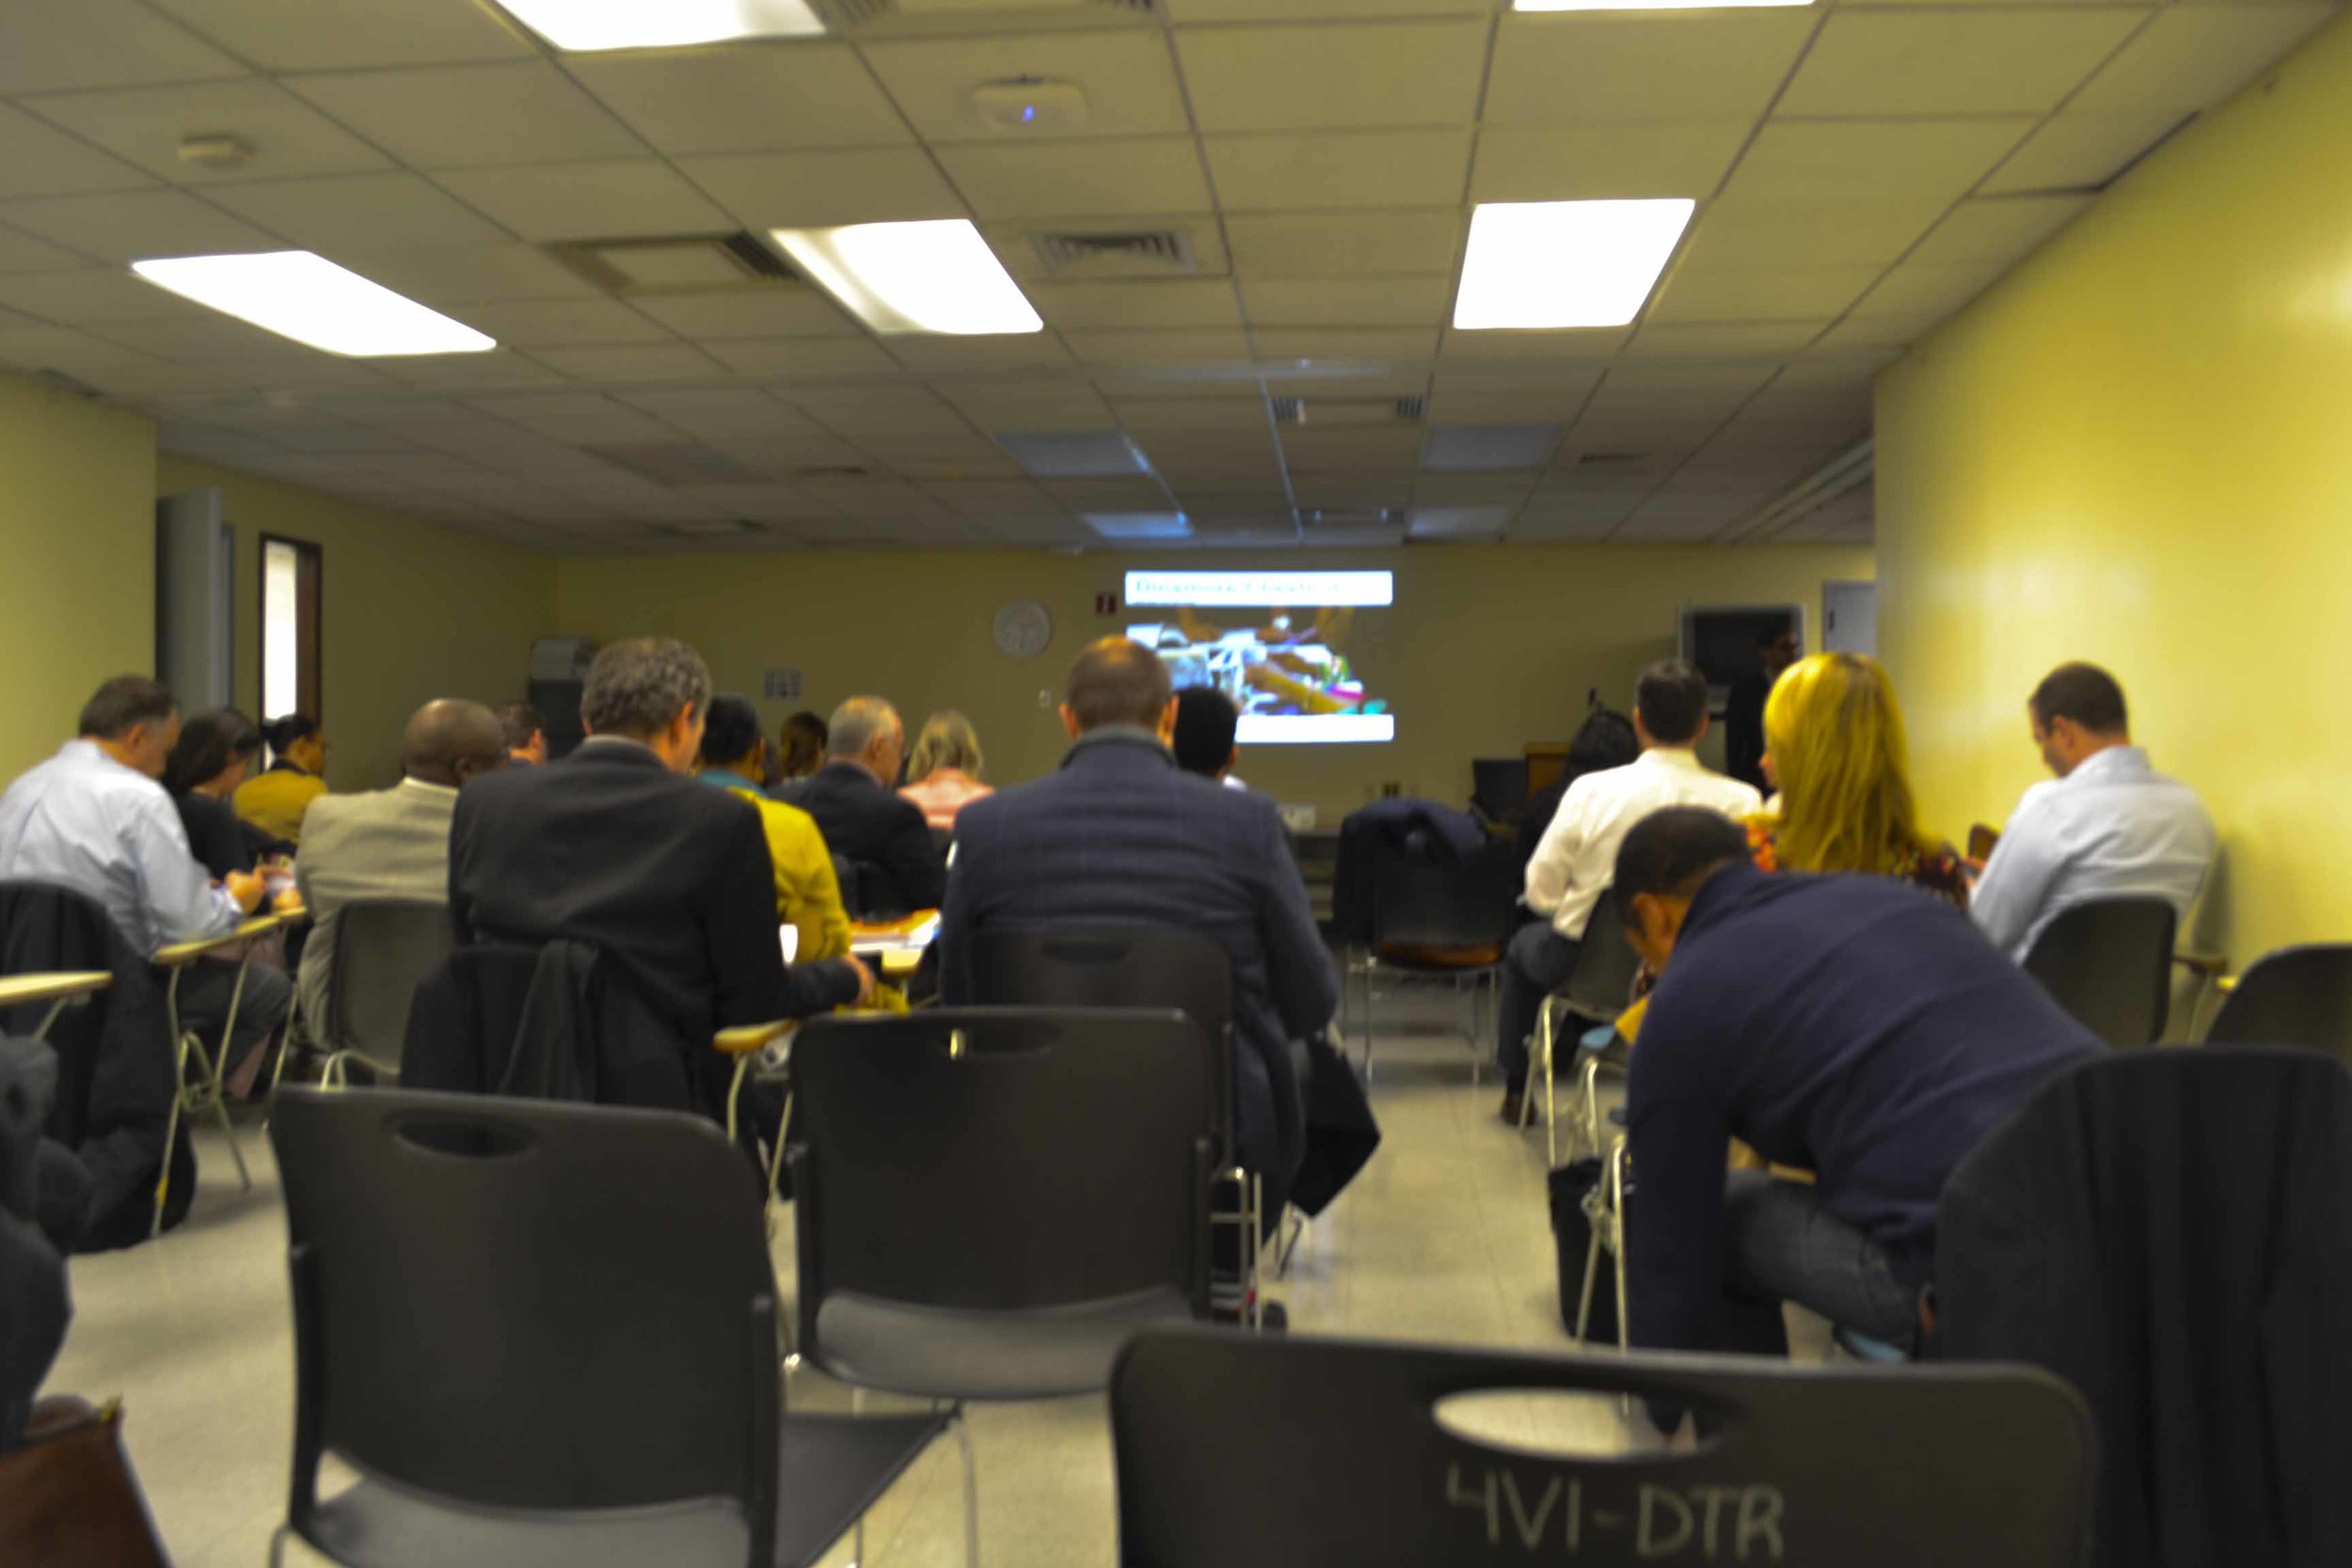 20170111__HPD pre-submission conferences_0189_social media images.jpg